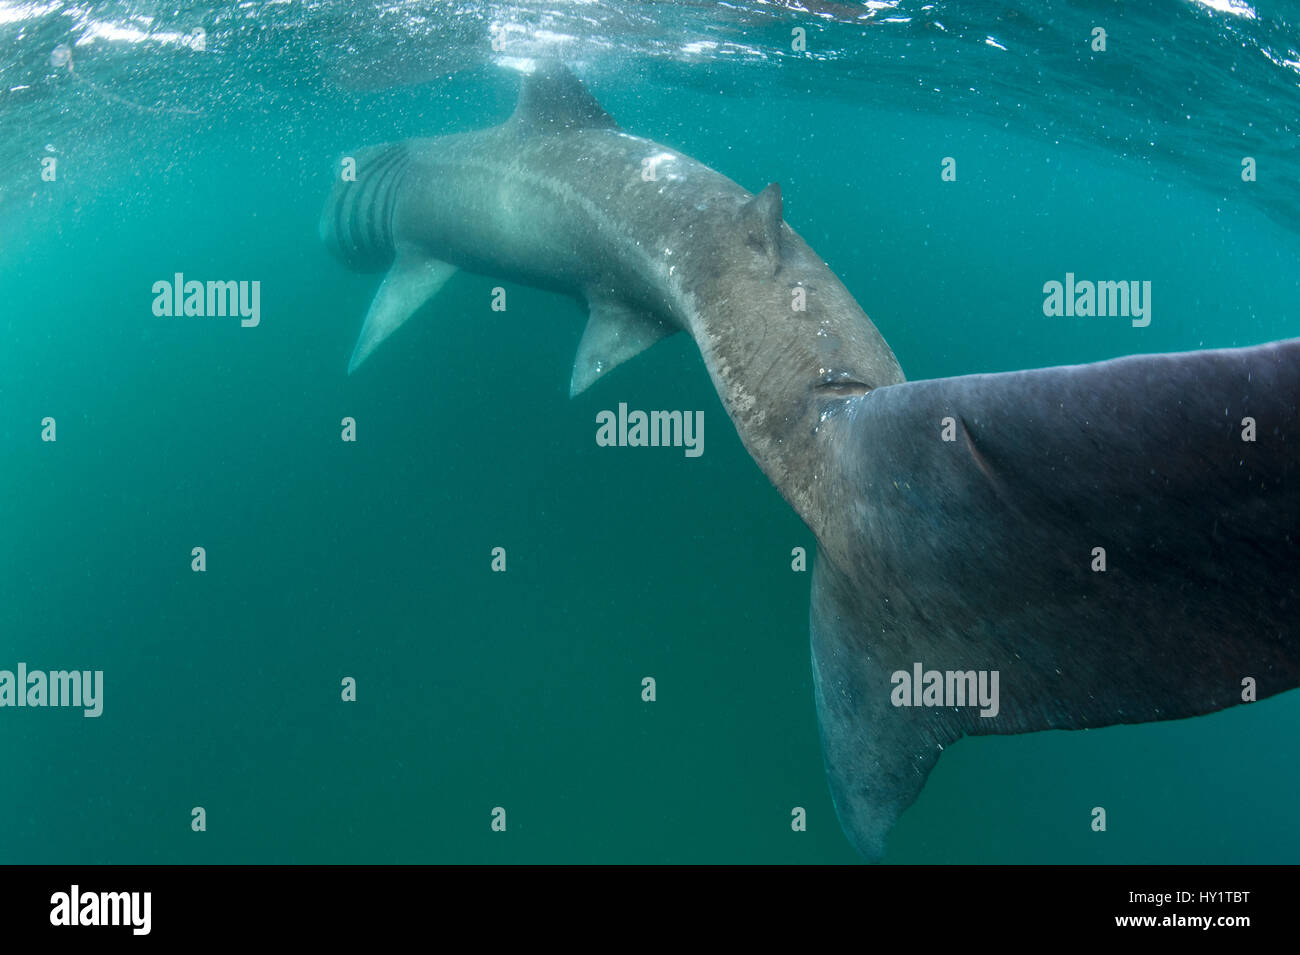 RF- Rear view of Basking shark (Cetorhinus maximus) feeding on plankton, visible as white dots on water surface - Stock Image